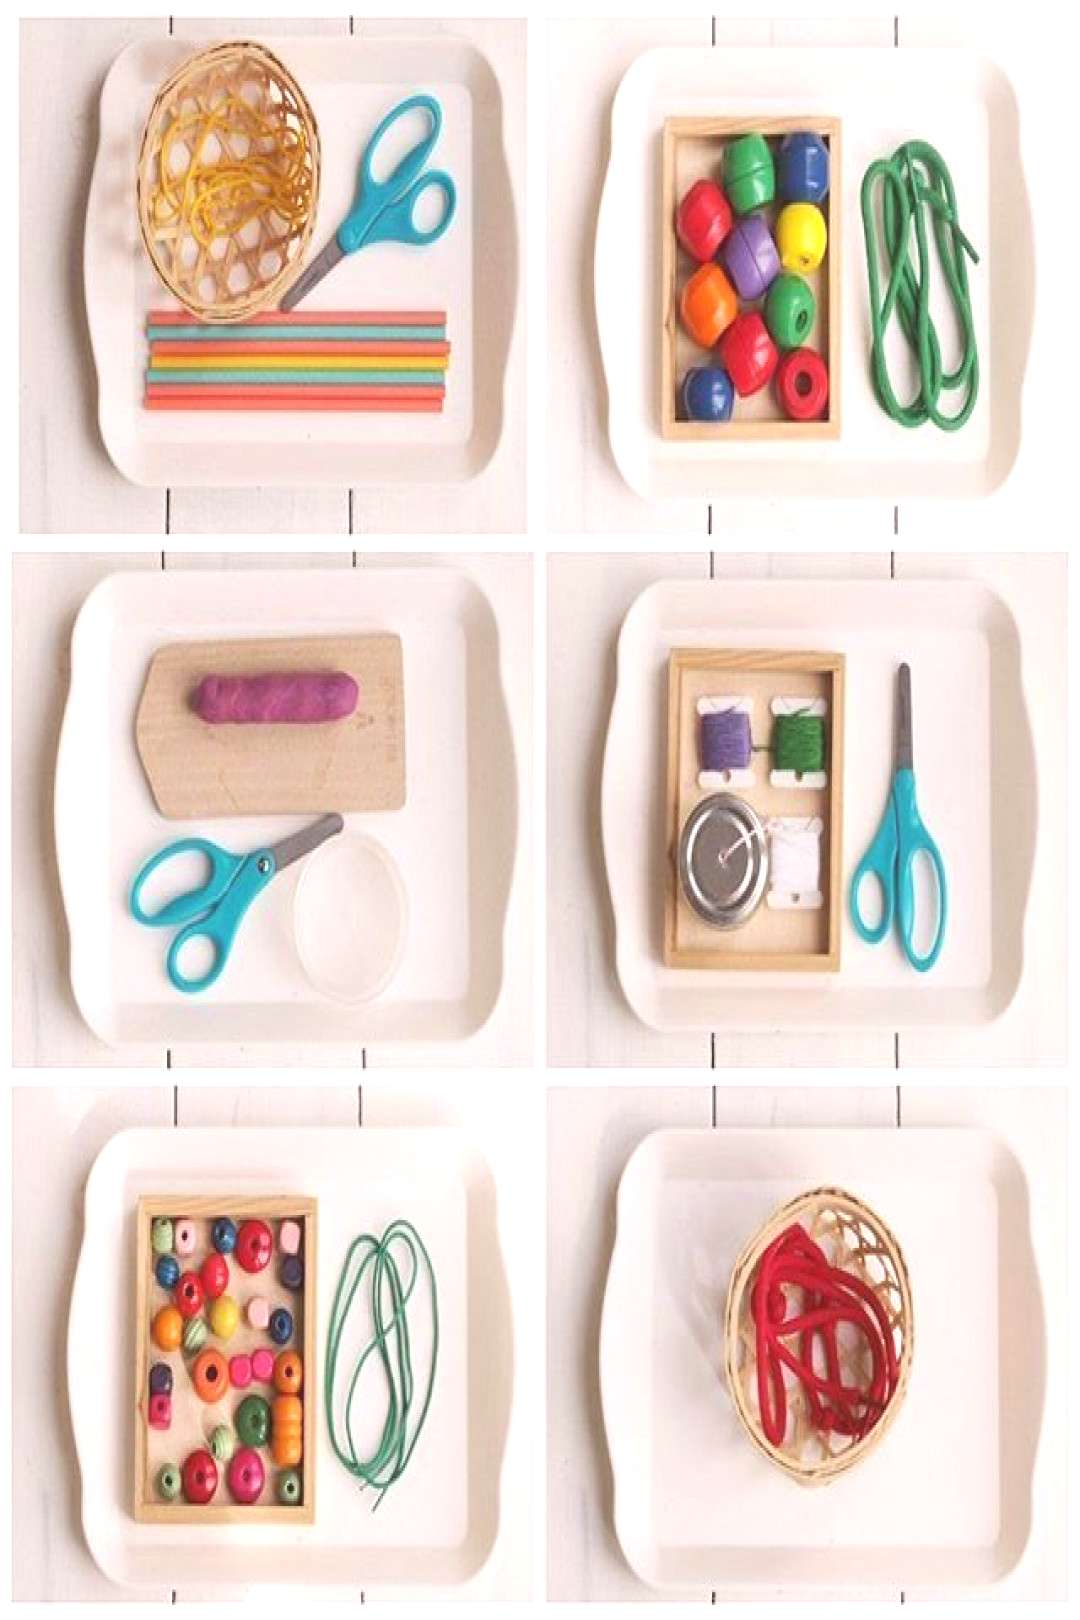 Introducing Sewing - Montessori Way ?(BLOGGED) . I always look for practical activities that are